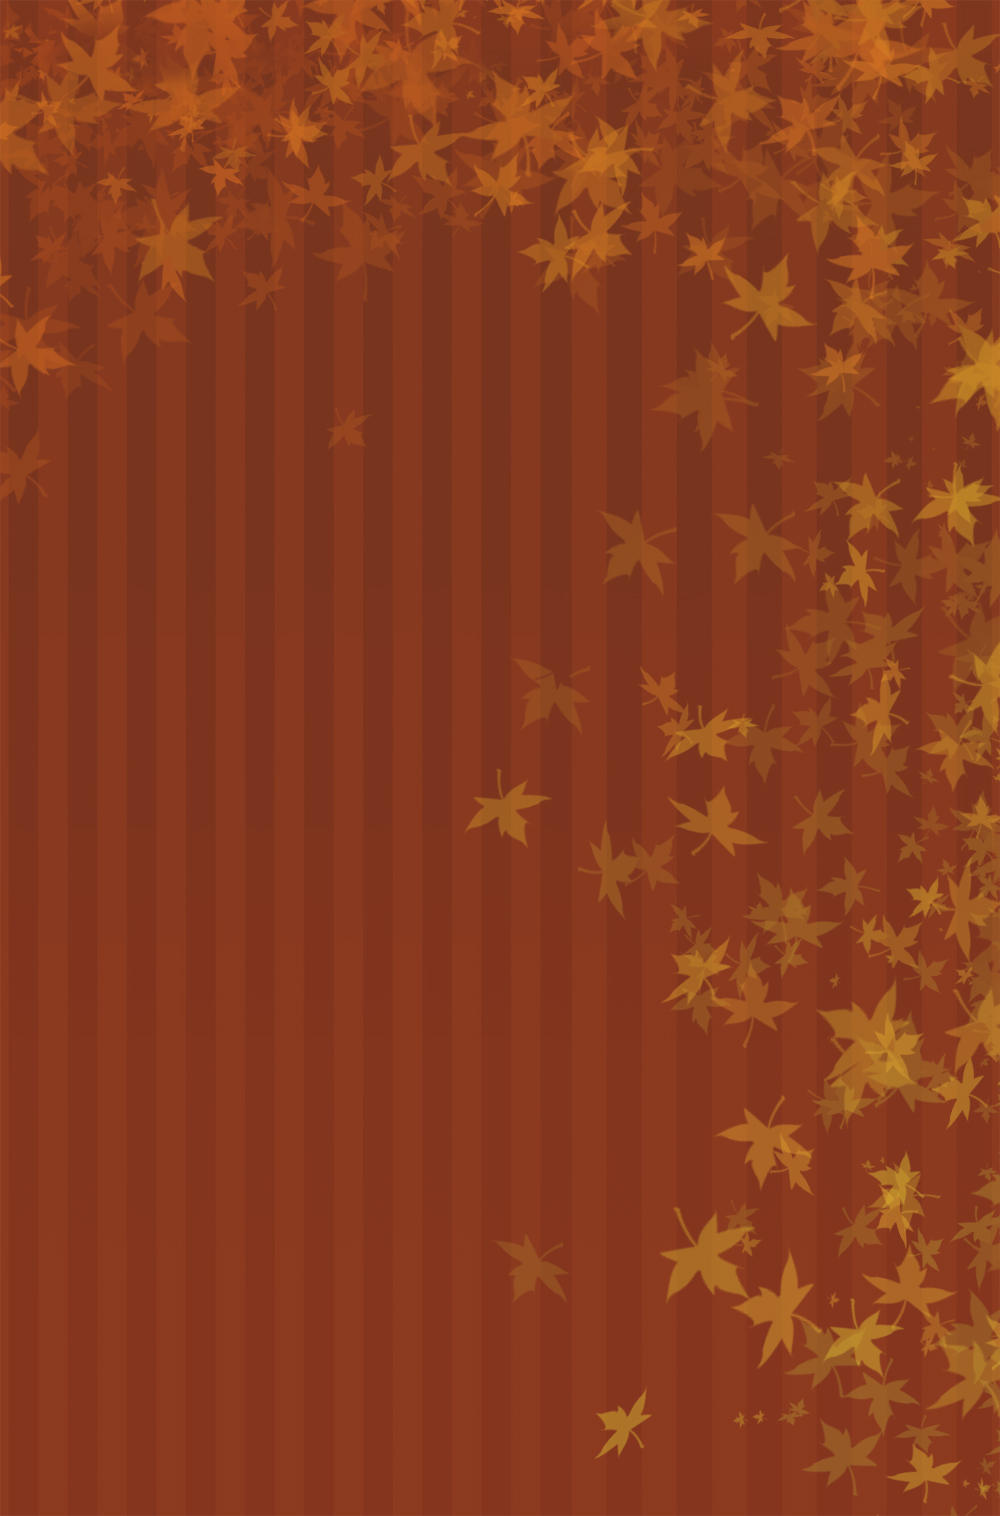 autumn leaves free custom box bg by SChan